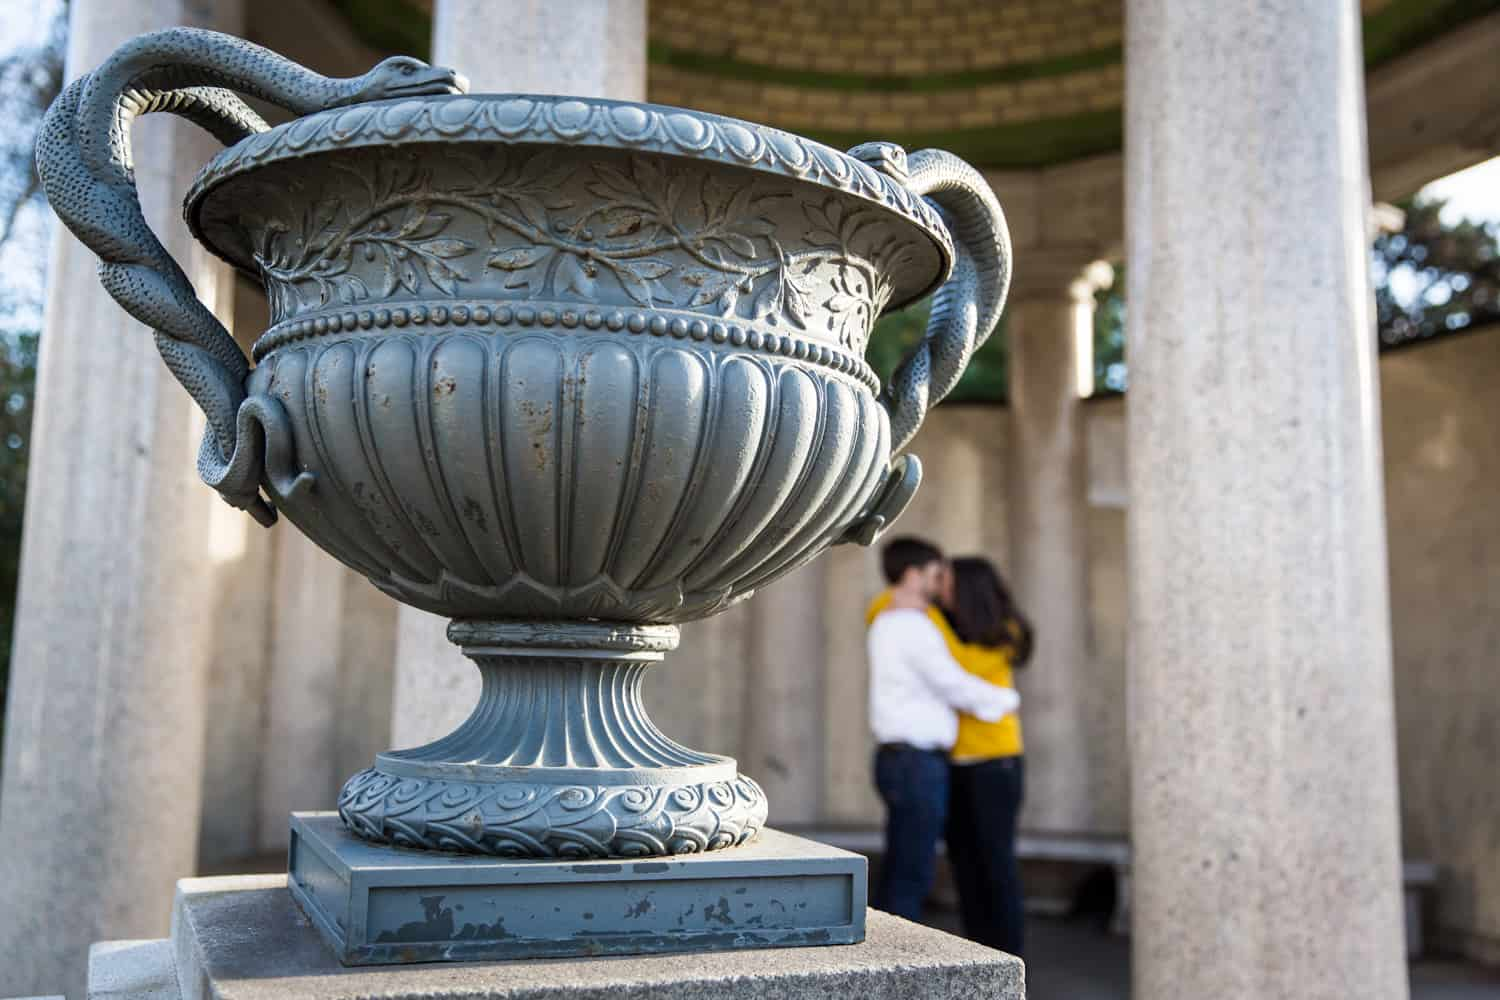 Planter urn with kissing couple in background